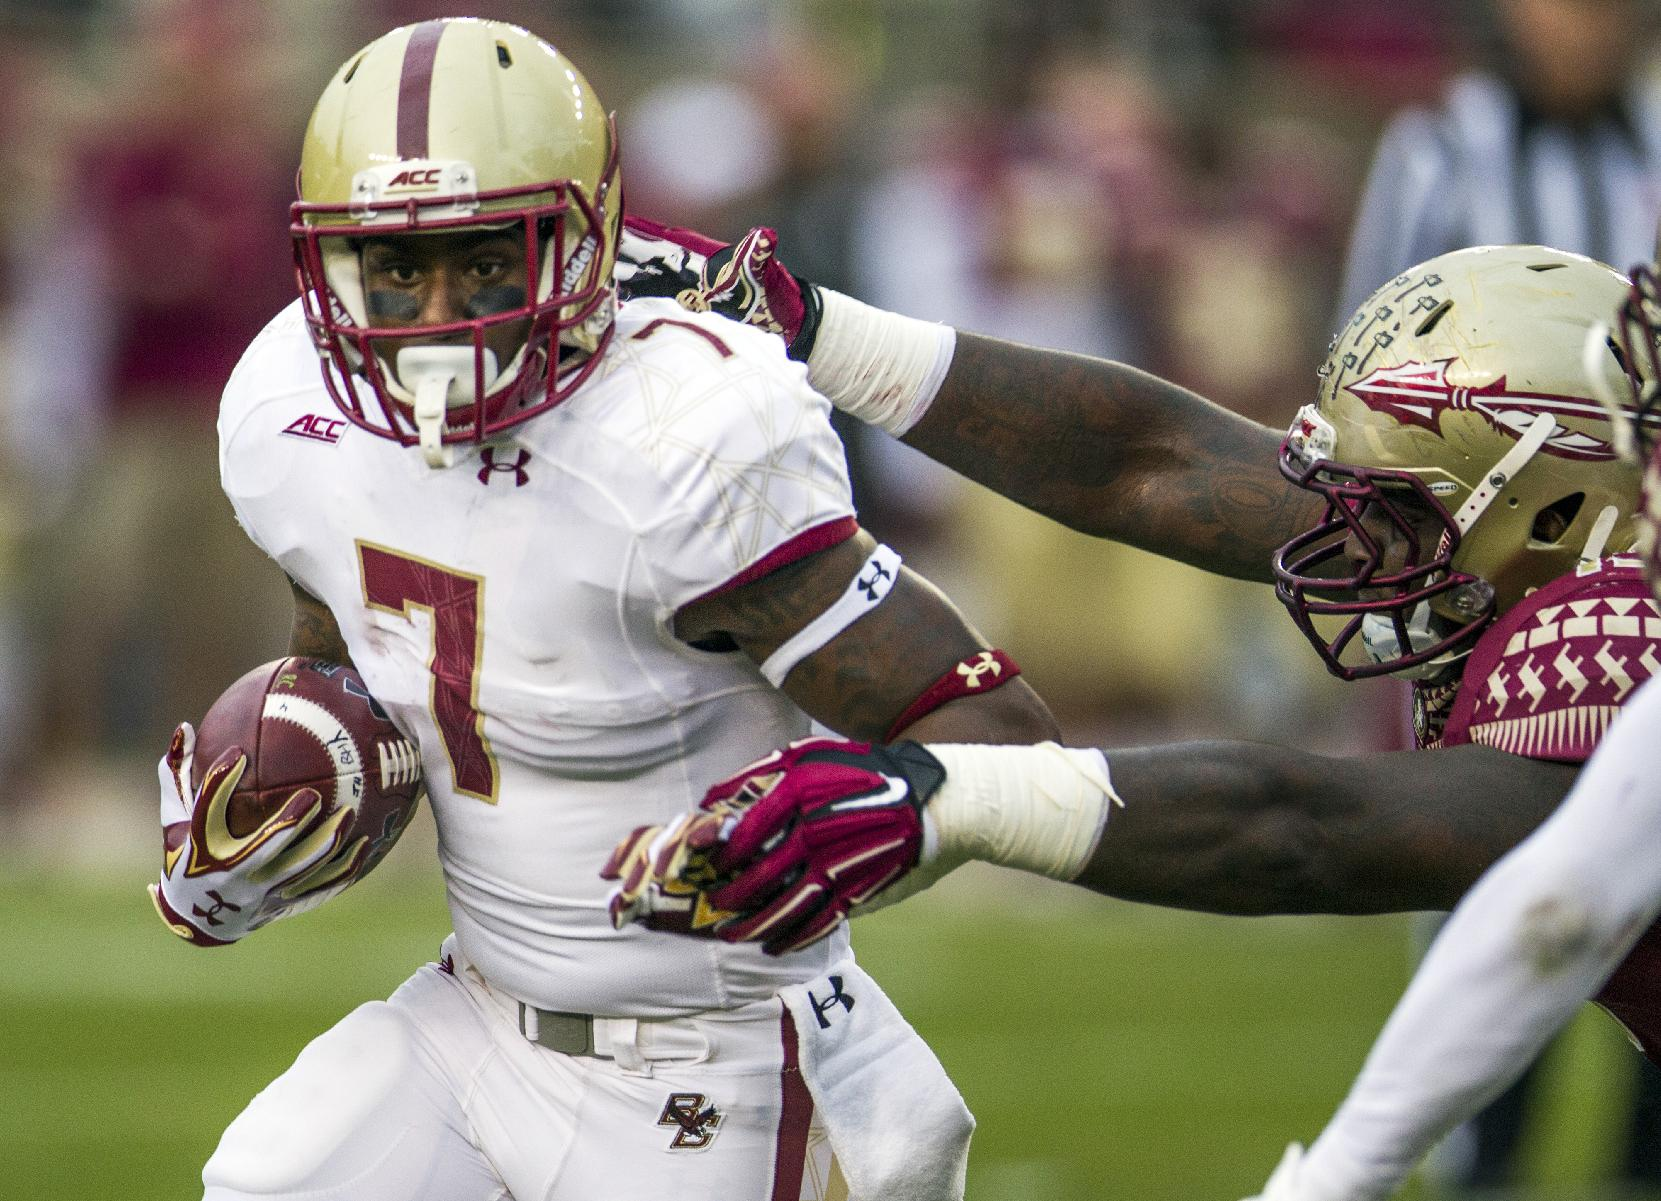 Boston College running back Marcus Outlow, left, breaks a tackle by Florida State Mario Edwards Sr. during the first half of an NCAA college football game in Tallahassee, Fla., Saturday, Nov. 22, 2014. (AP Photo/Mark Wallheiser)